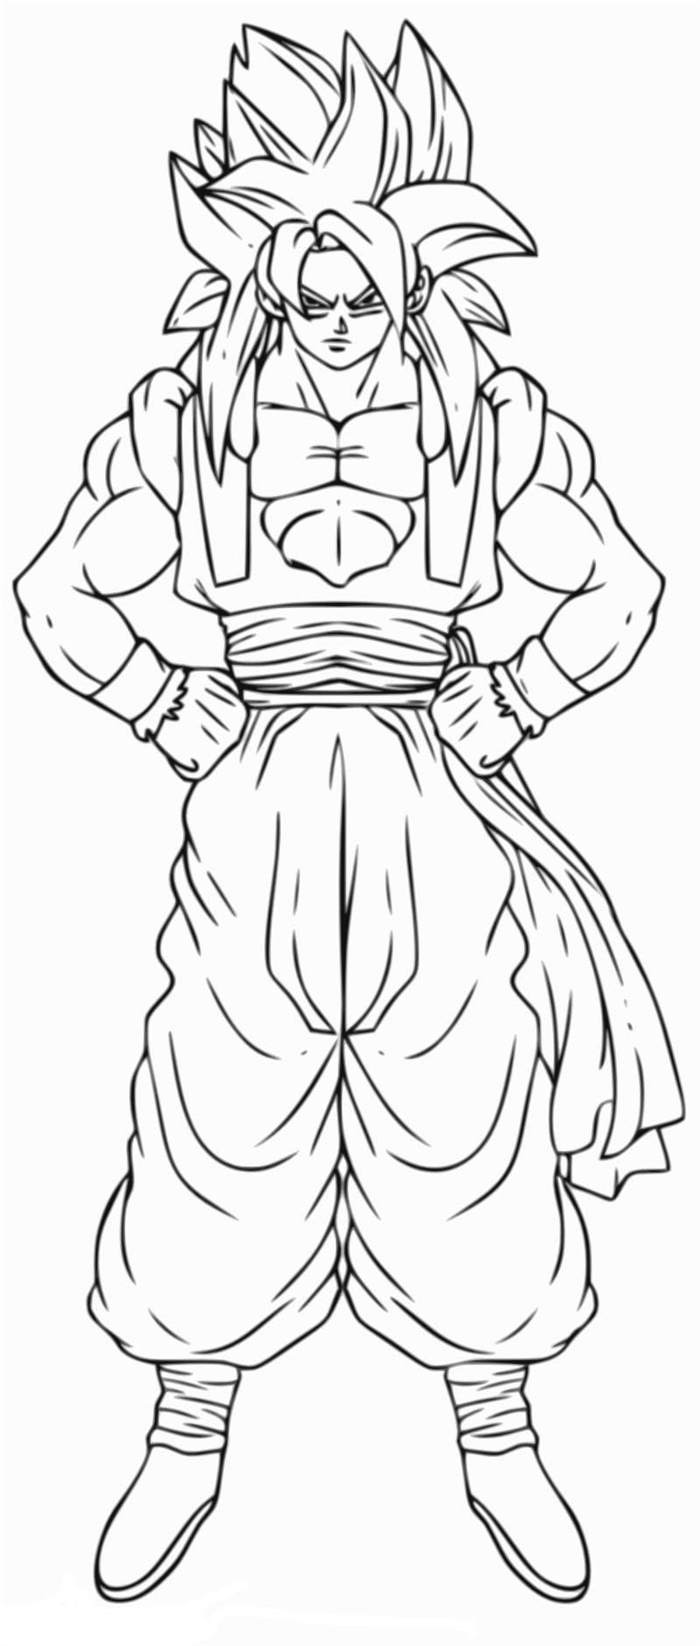 Inspirational Dragon Ball Z Coloring Pages Linear Free